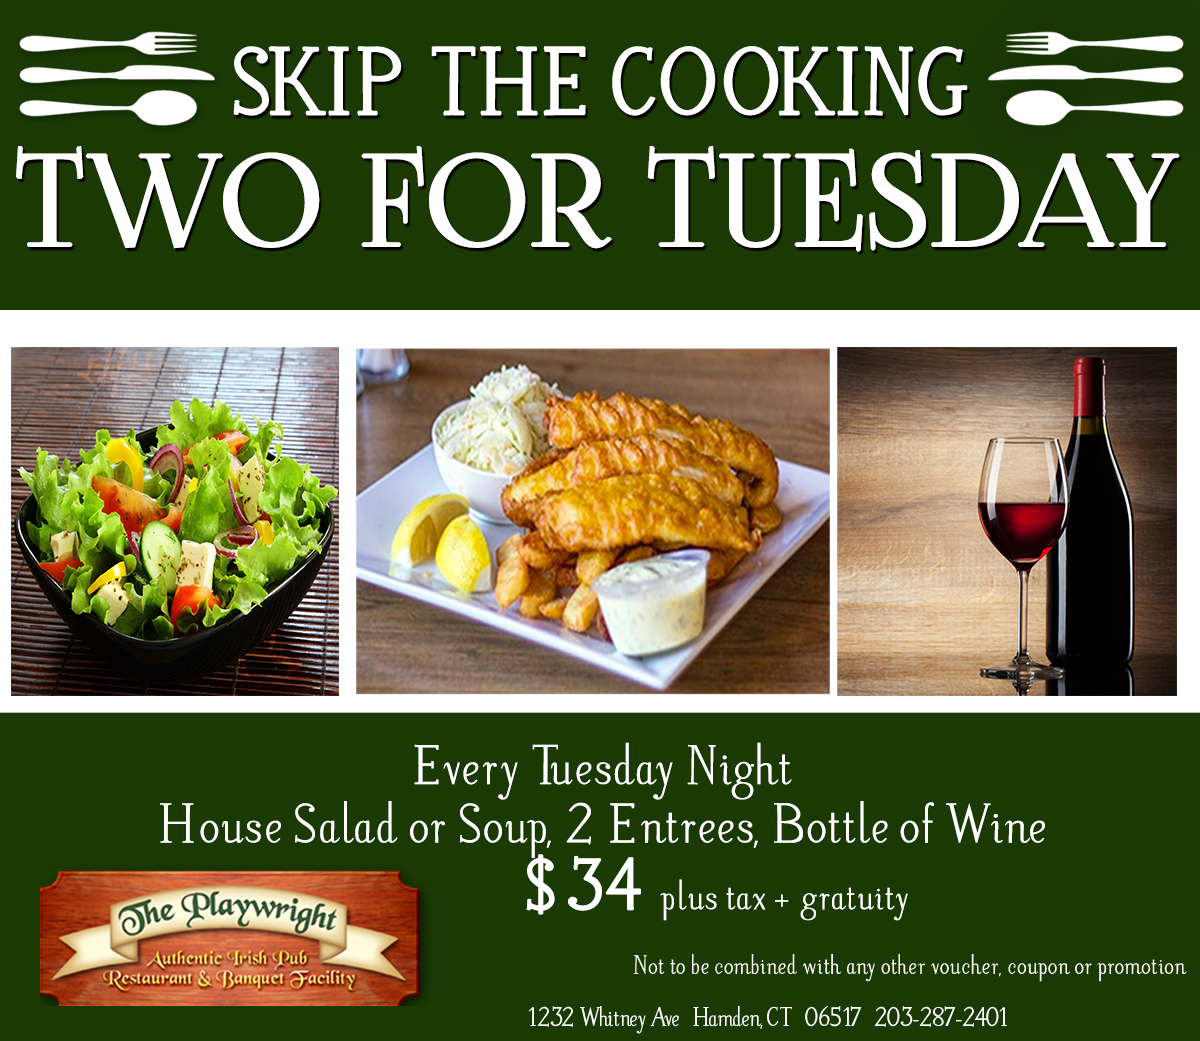 Skip the cooking! Two for Tuesday & Thursday. Every Tuesday and Thursday night, house salad or soup, 2 entrees and bottle of wine for $34 plus tax and gratuity.